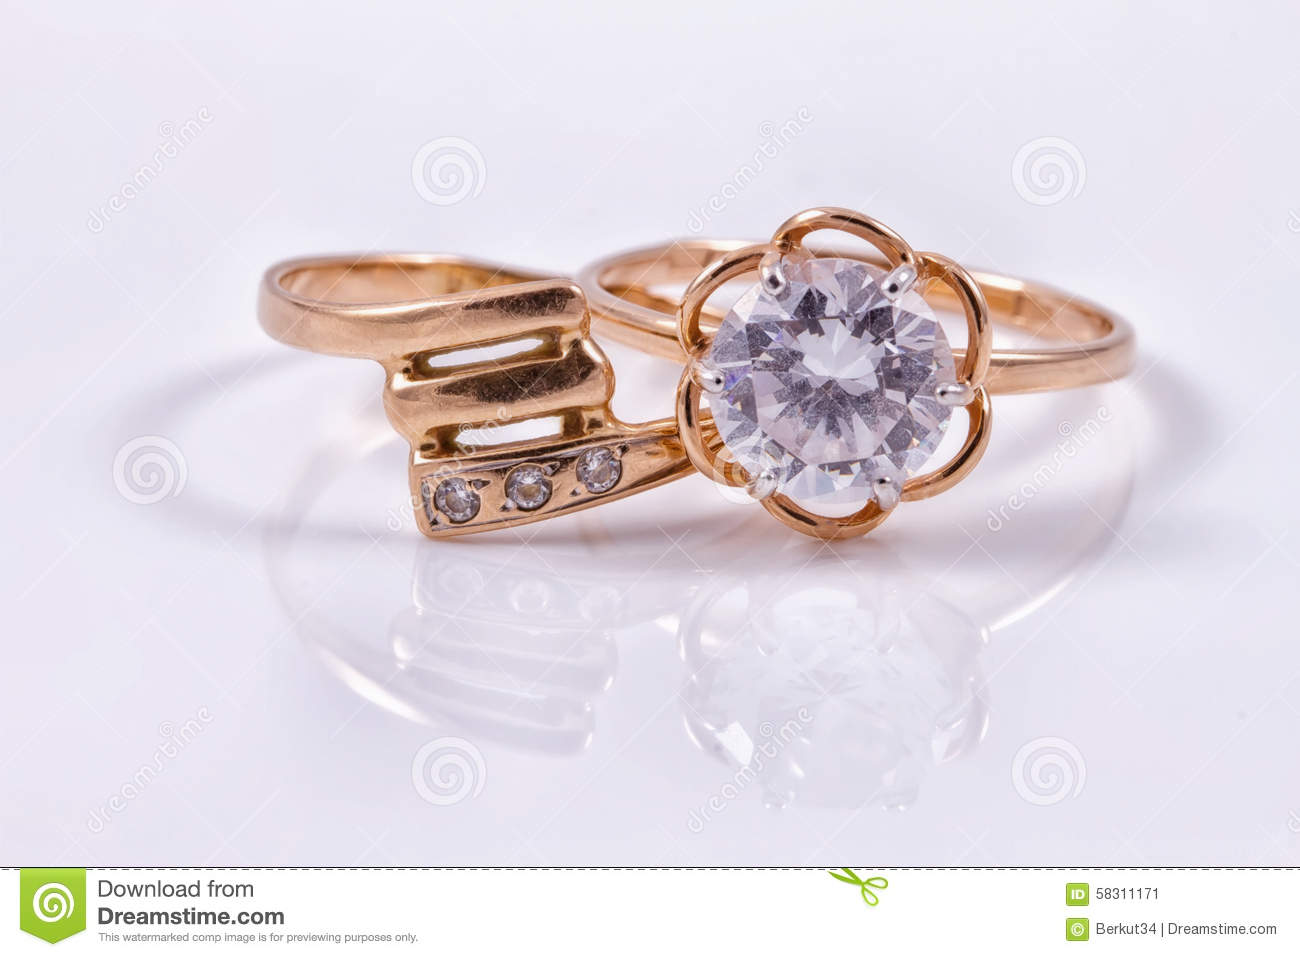 Different a gold rings stock image. Image of attractive - 58311171